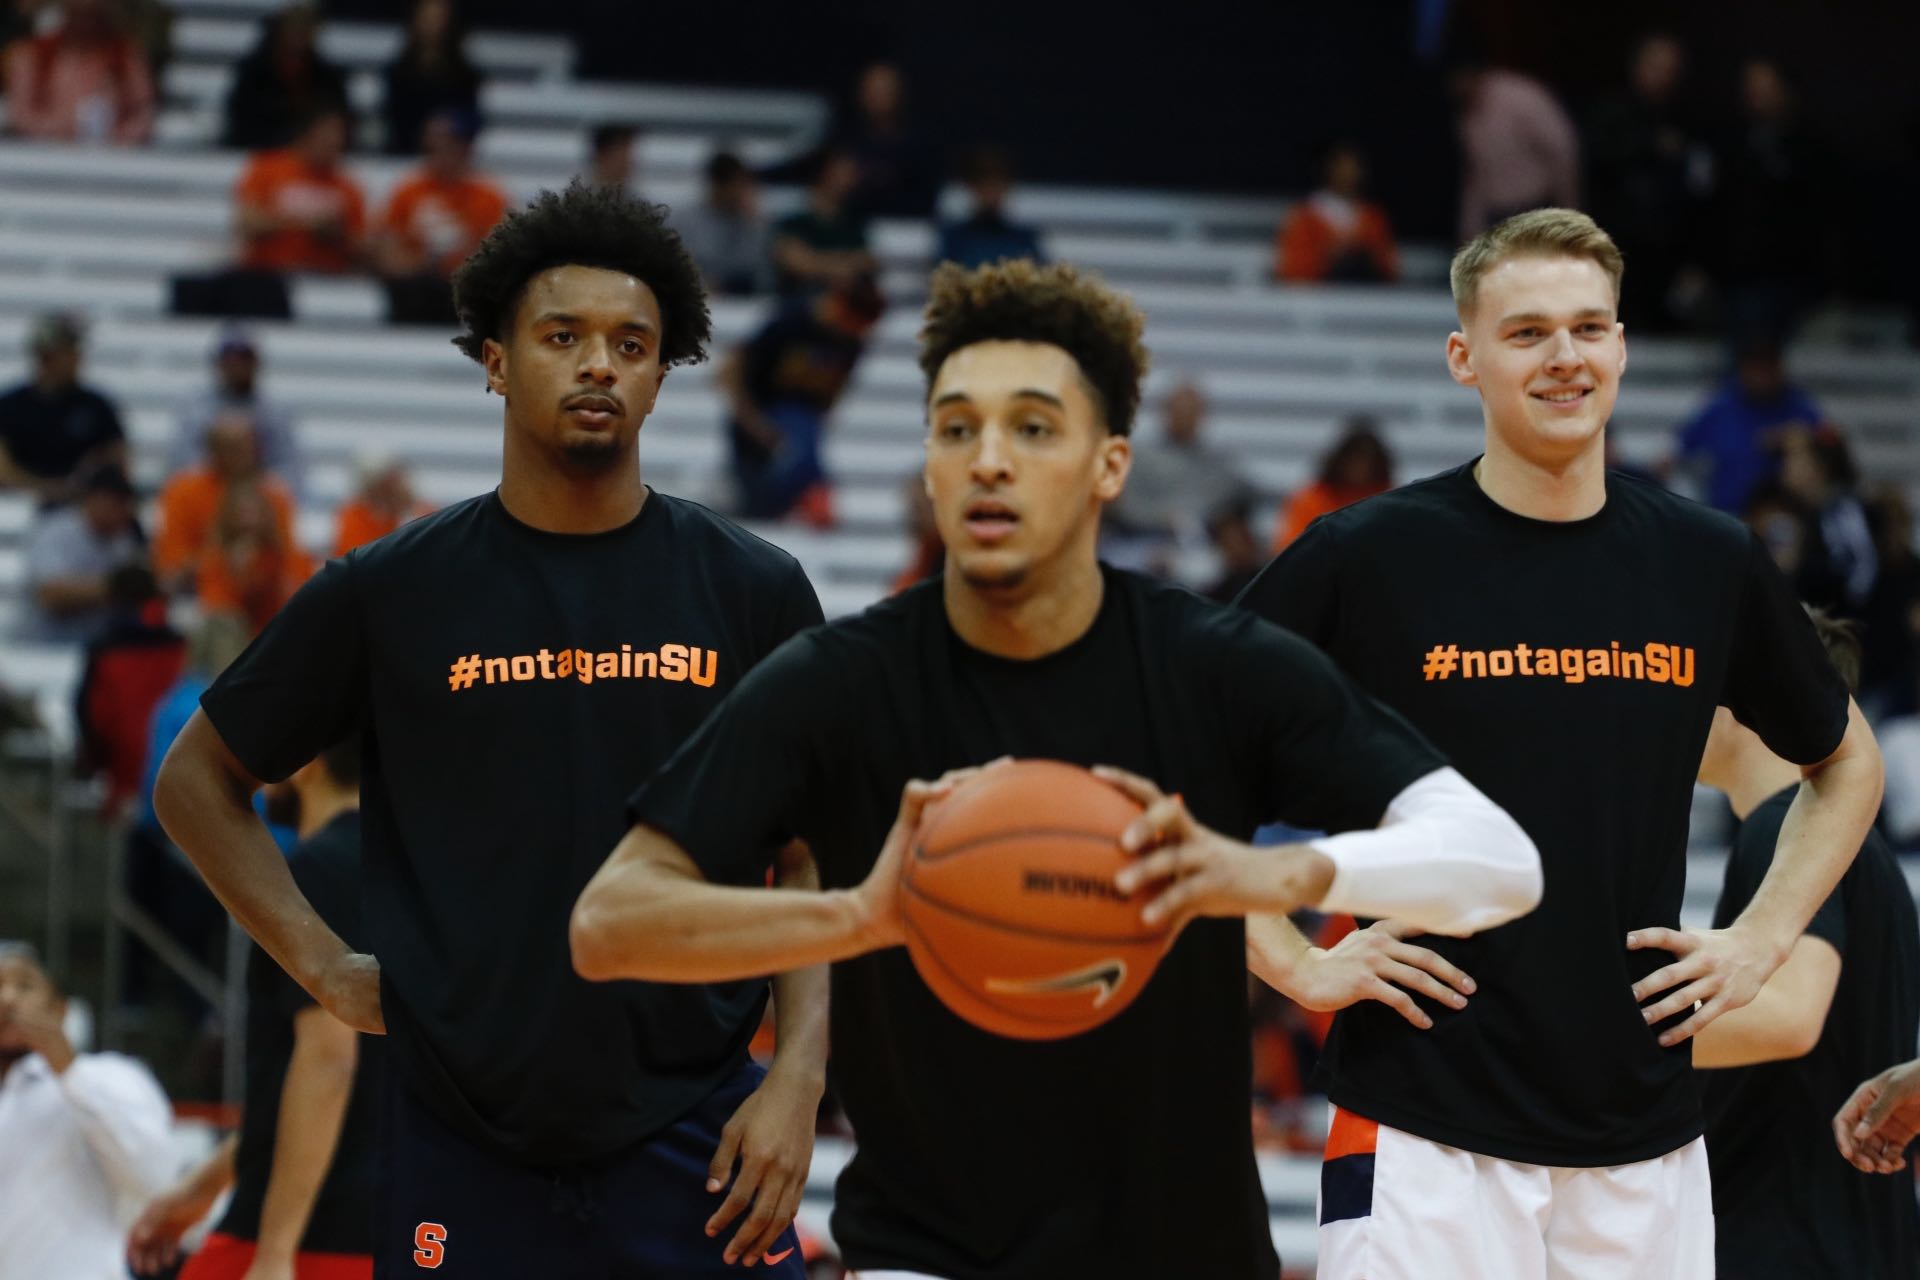 Syracuse Men S Basketball Makes Statement With Notagainsu Warm Ups The Daily Orange